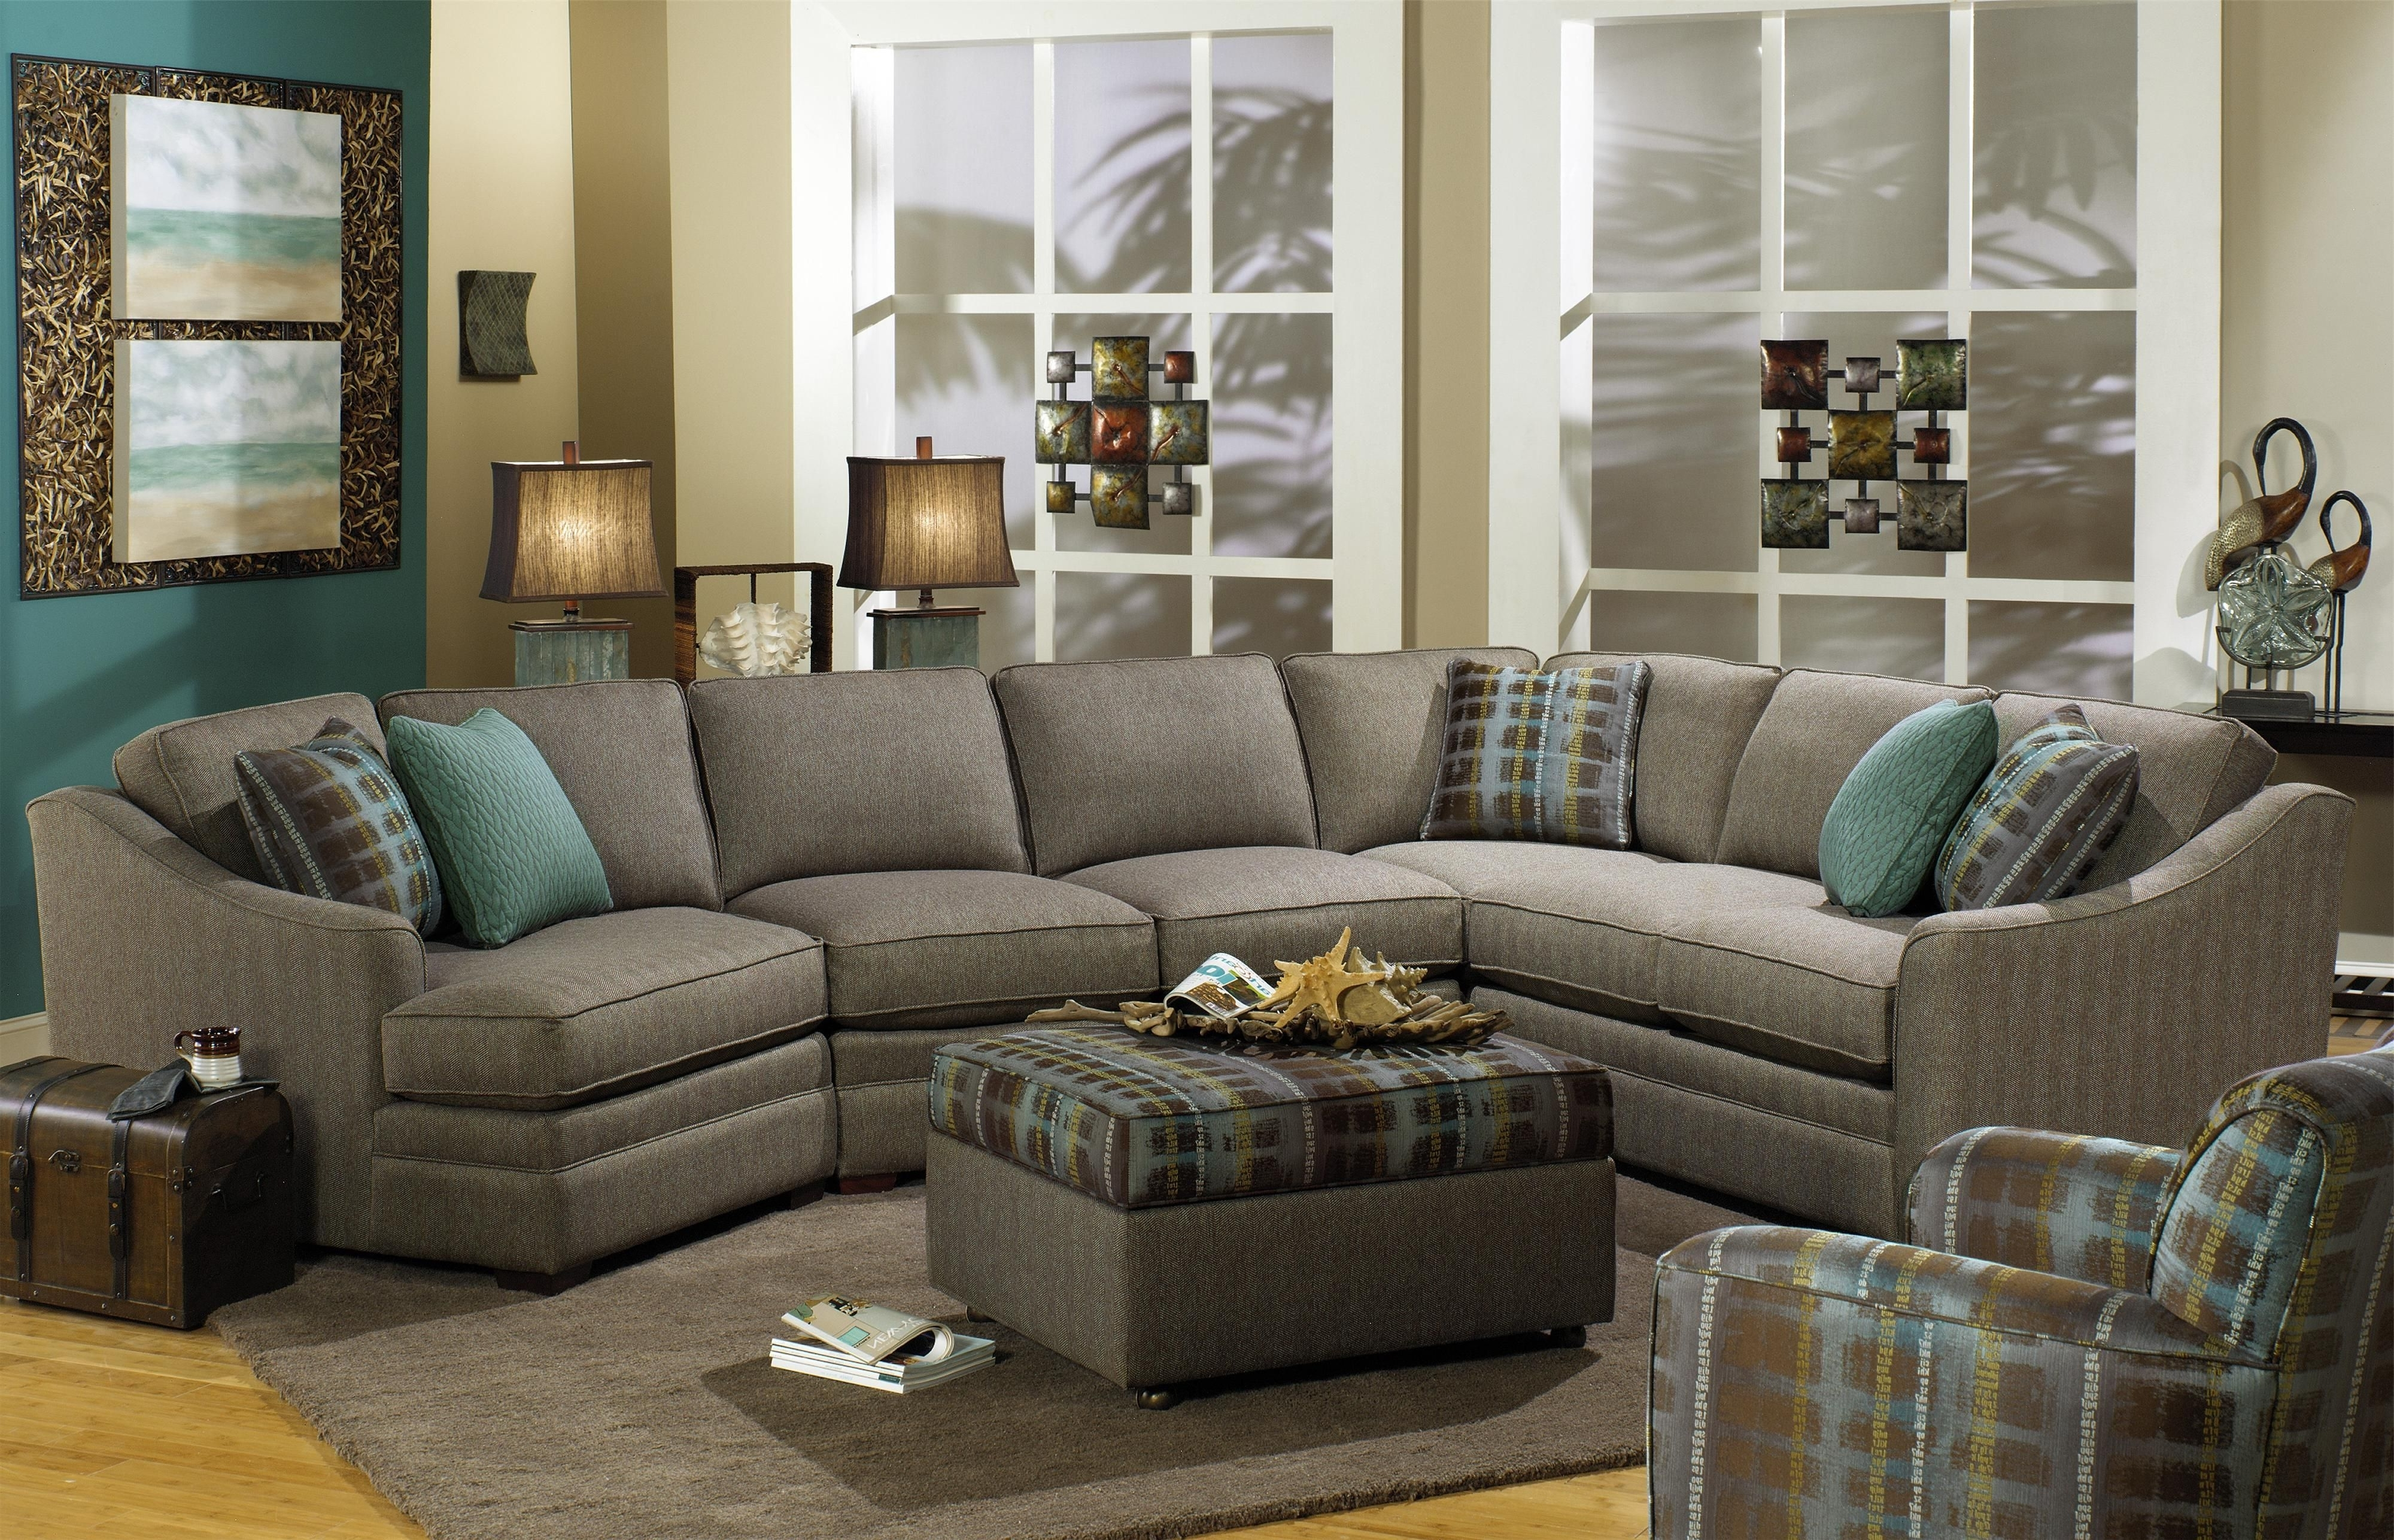 Customizable Sectional Sofas Intended For Trendy F9 Custom Collection Customizable 3 Piece Sectional With Laf (View 4 of 15)